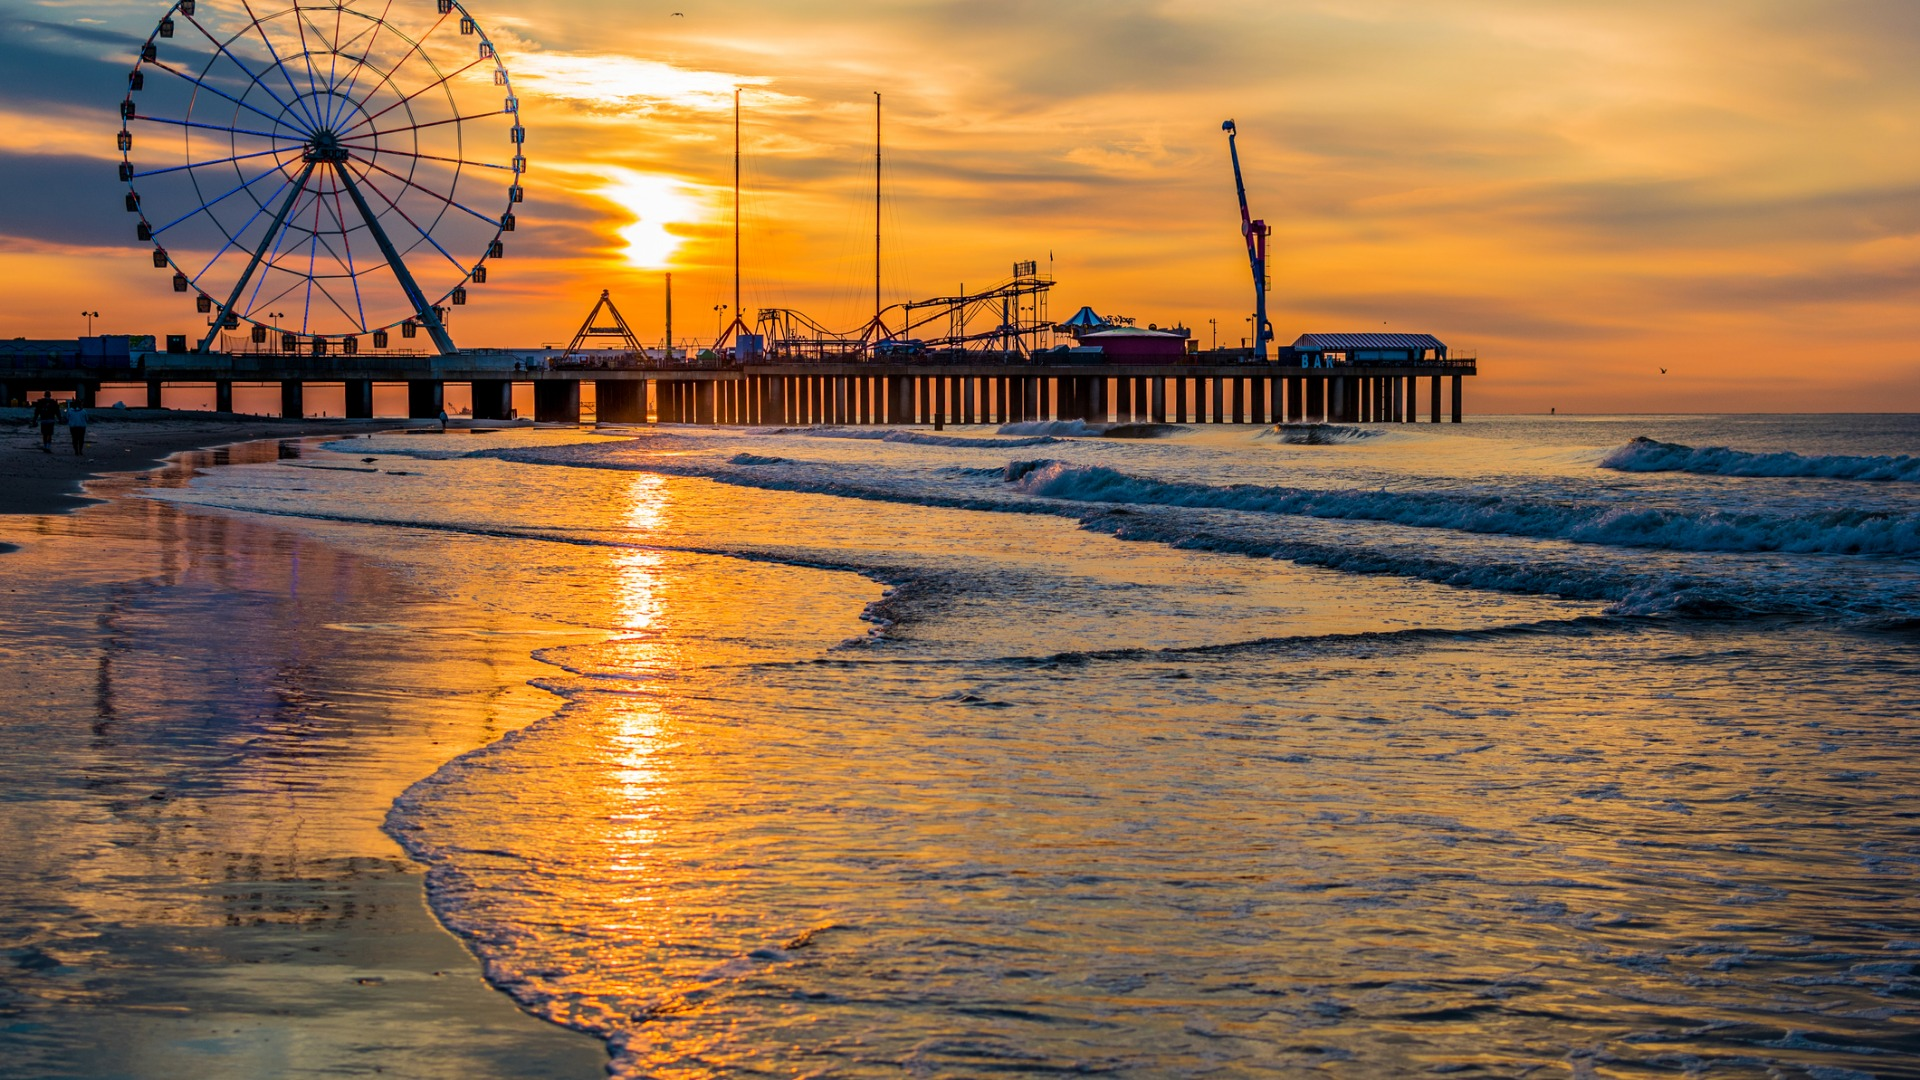 Sunset over the pier in Atlantic City